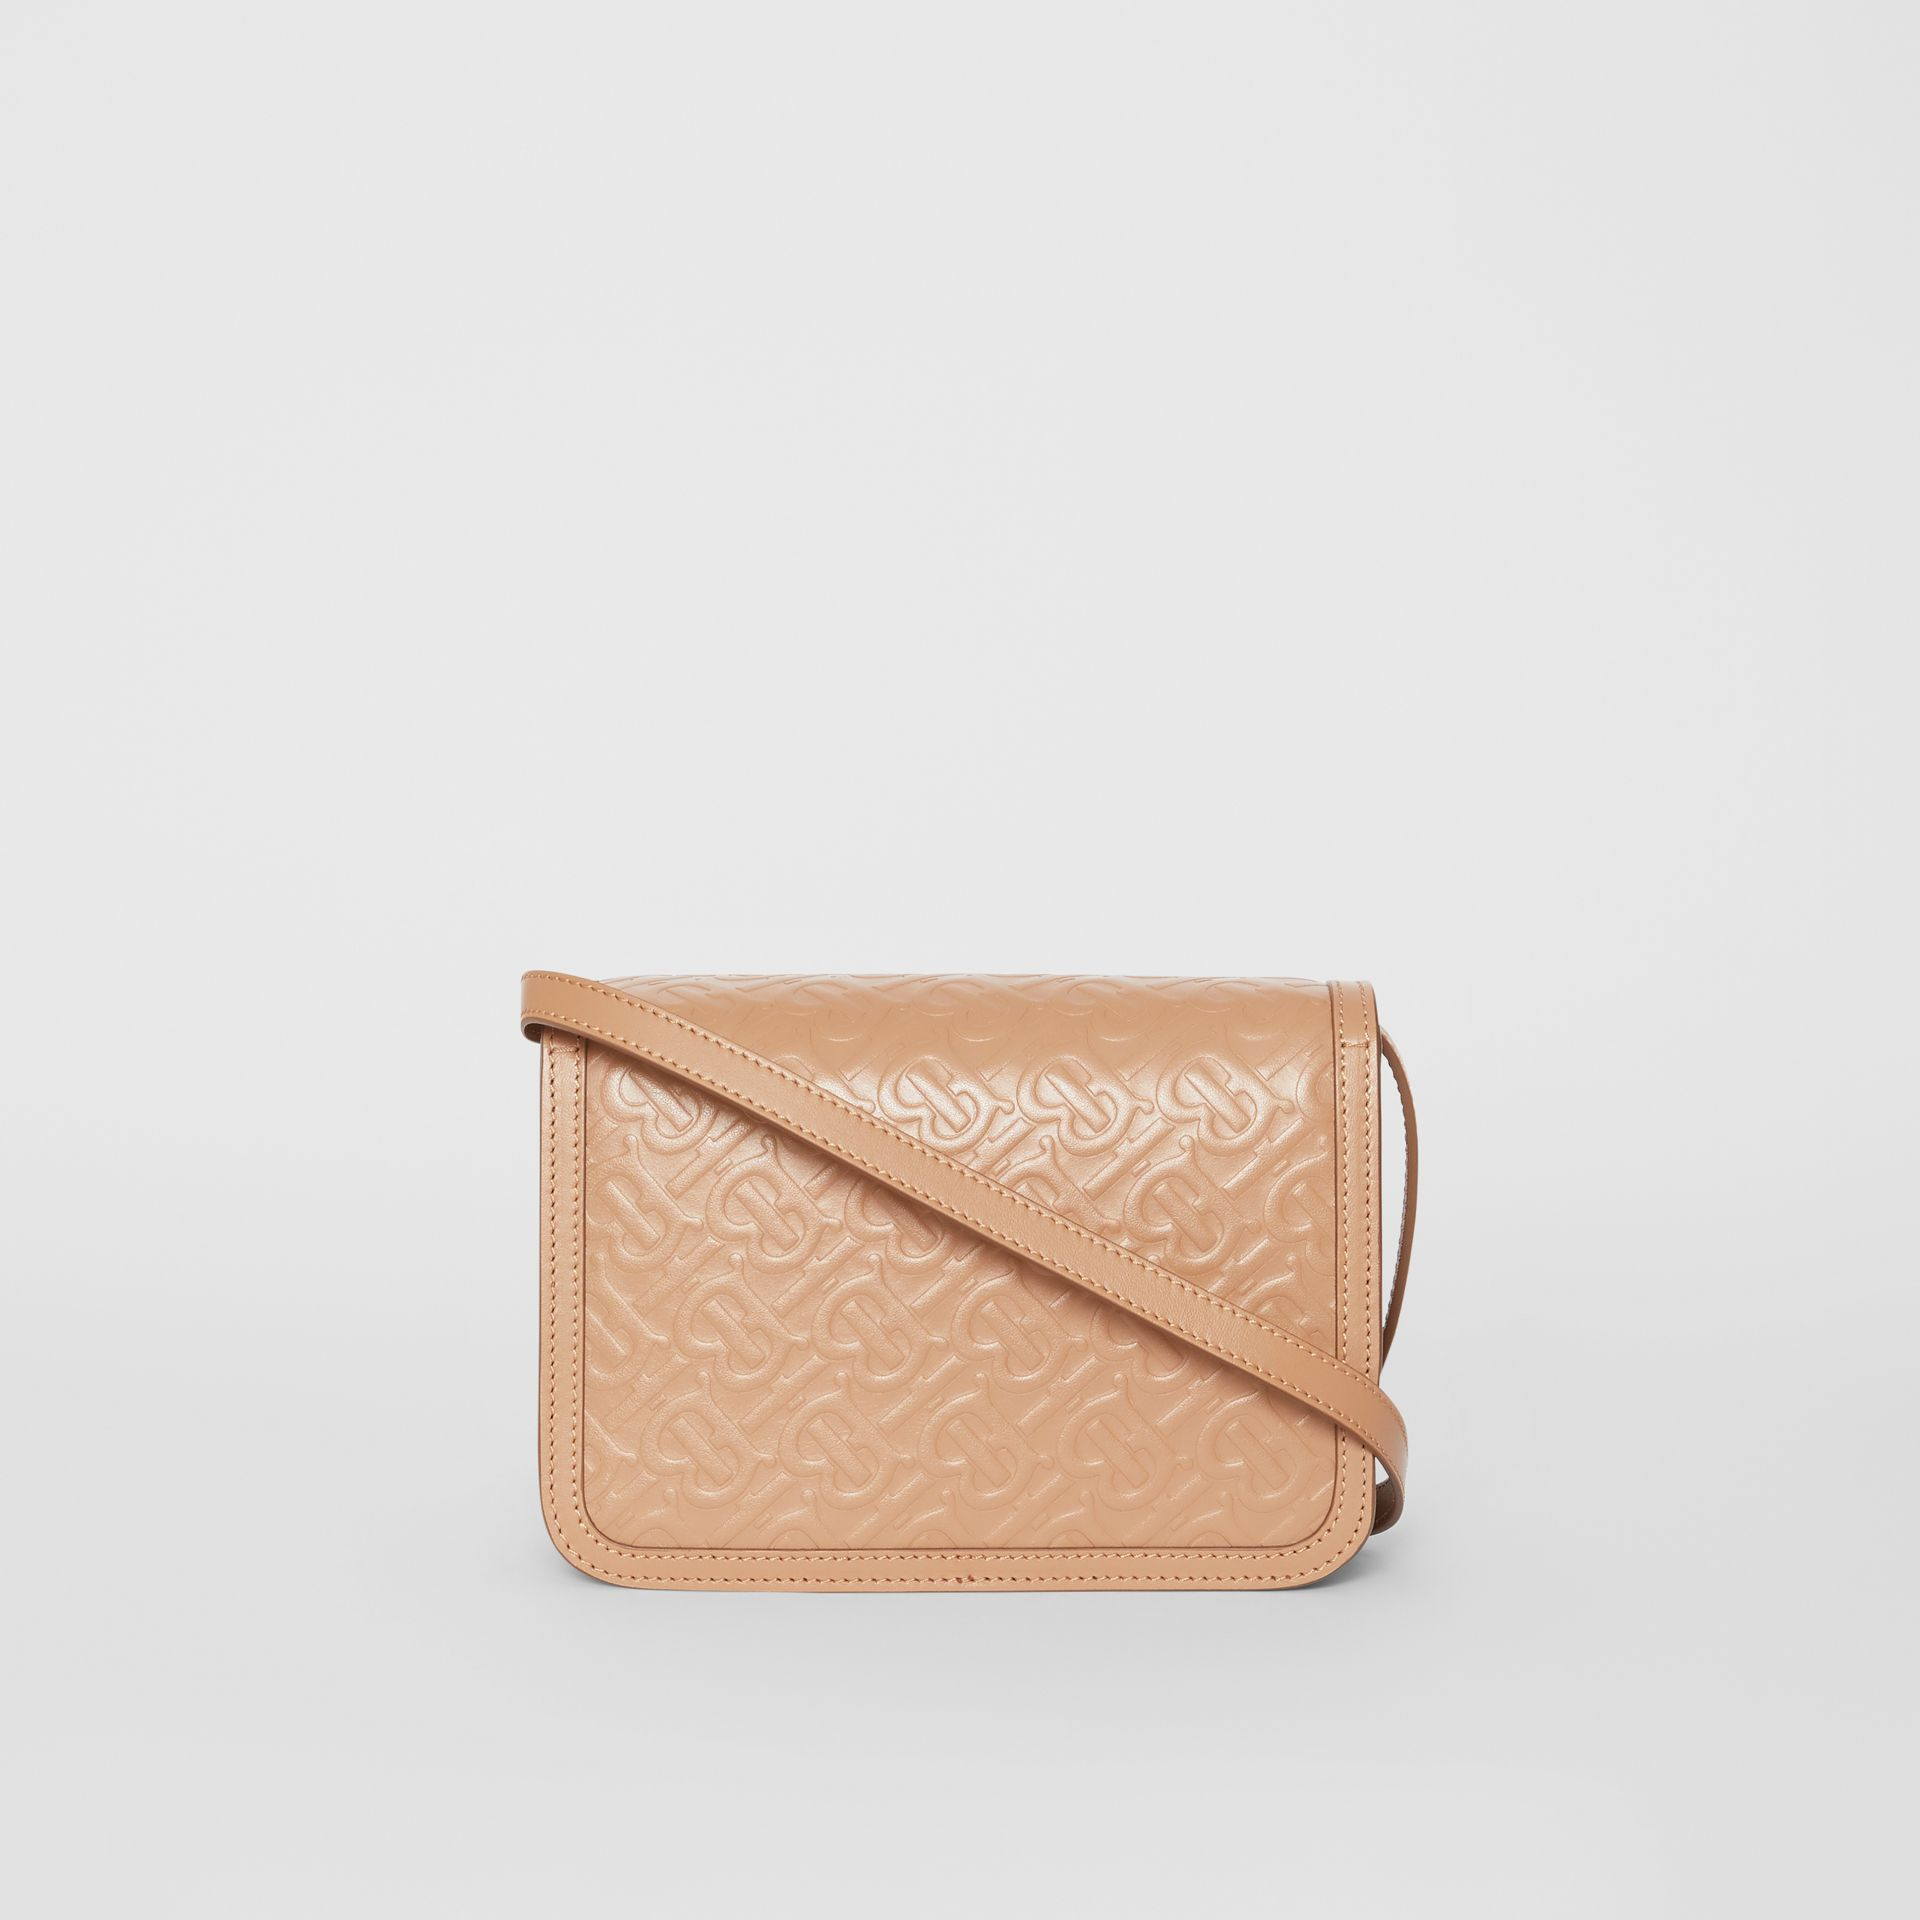 Small Monogram Leather TB Bag in Light Camel - Women | Burberry United Kingdom - gallery image 7